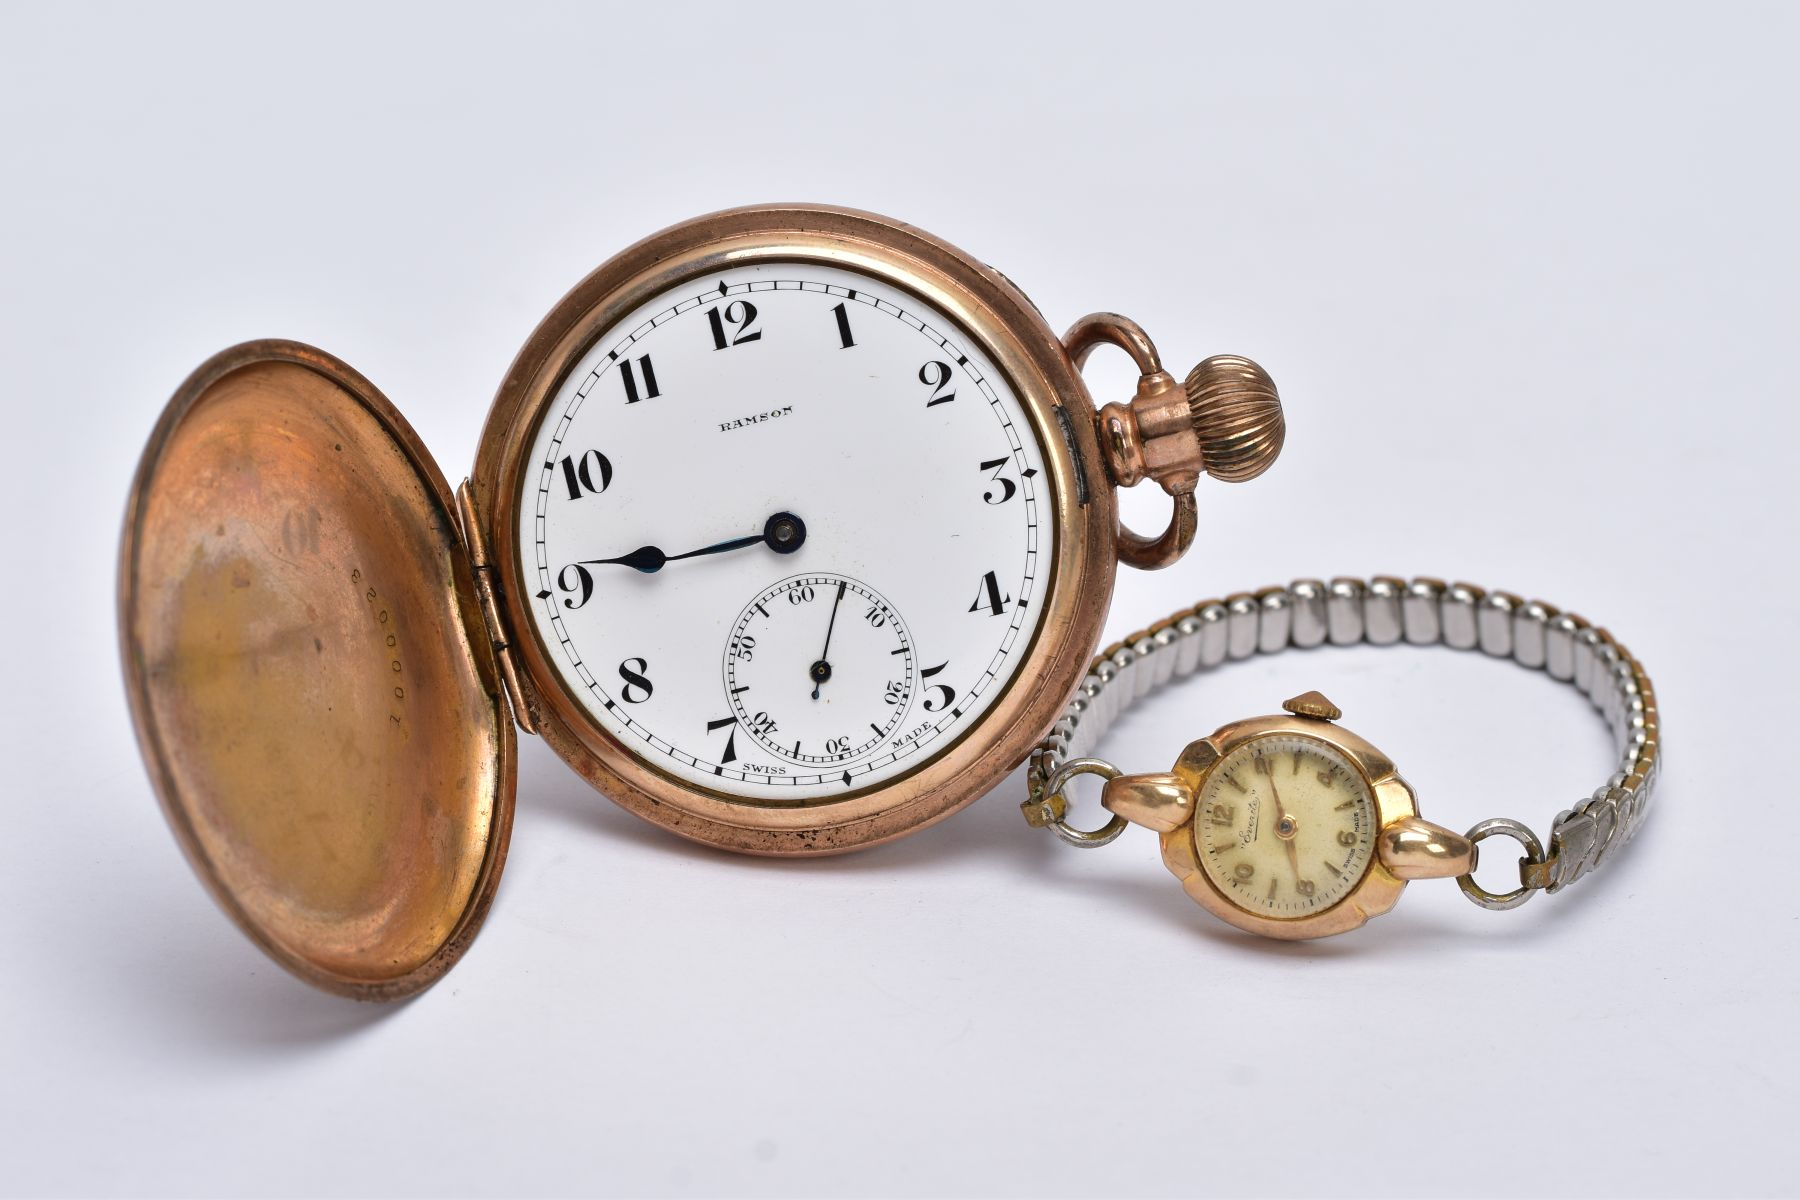 A LADIES 9CT GOLD CASED WRISTWATCH AND A GOLD PLATED POCKET WATCH, the ladies wristwatch with a